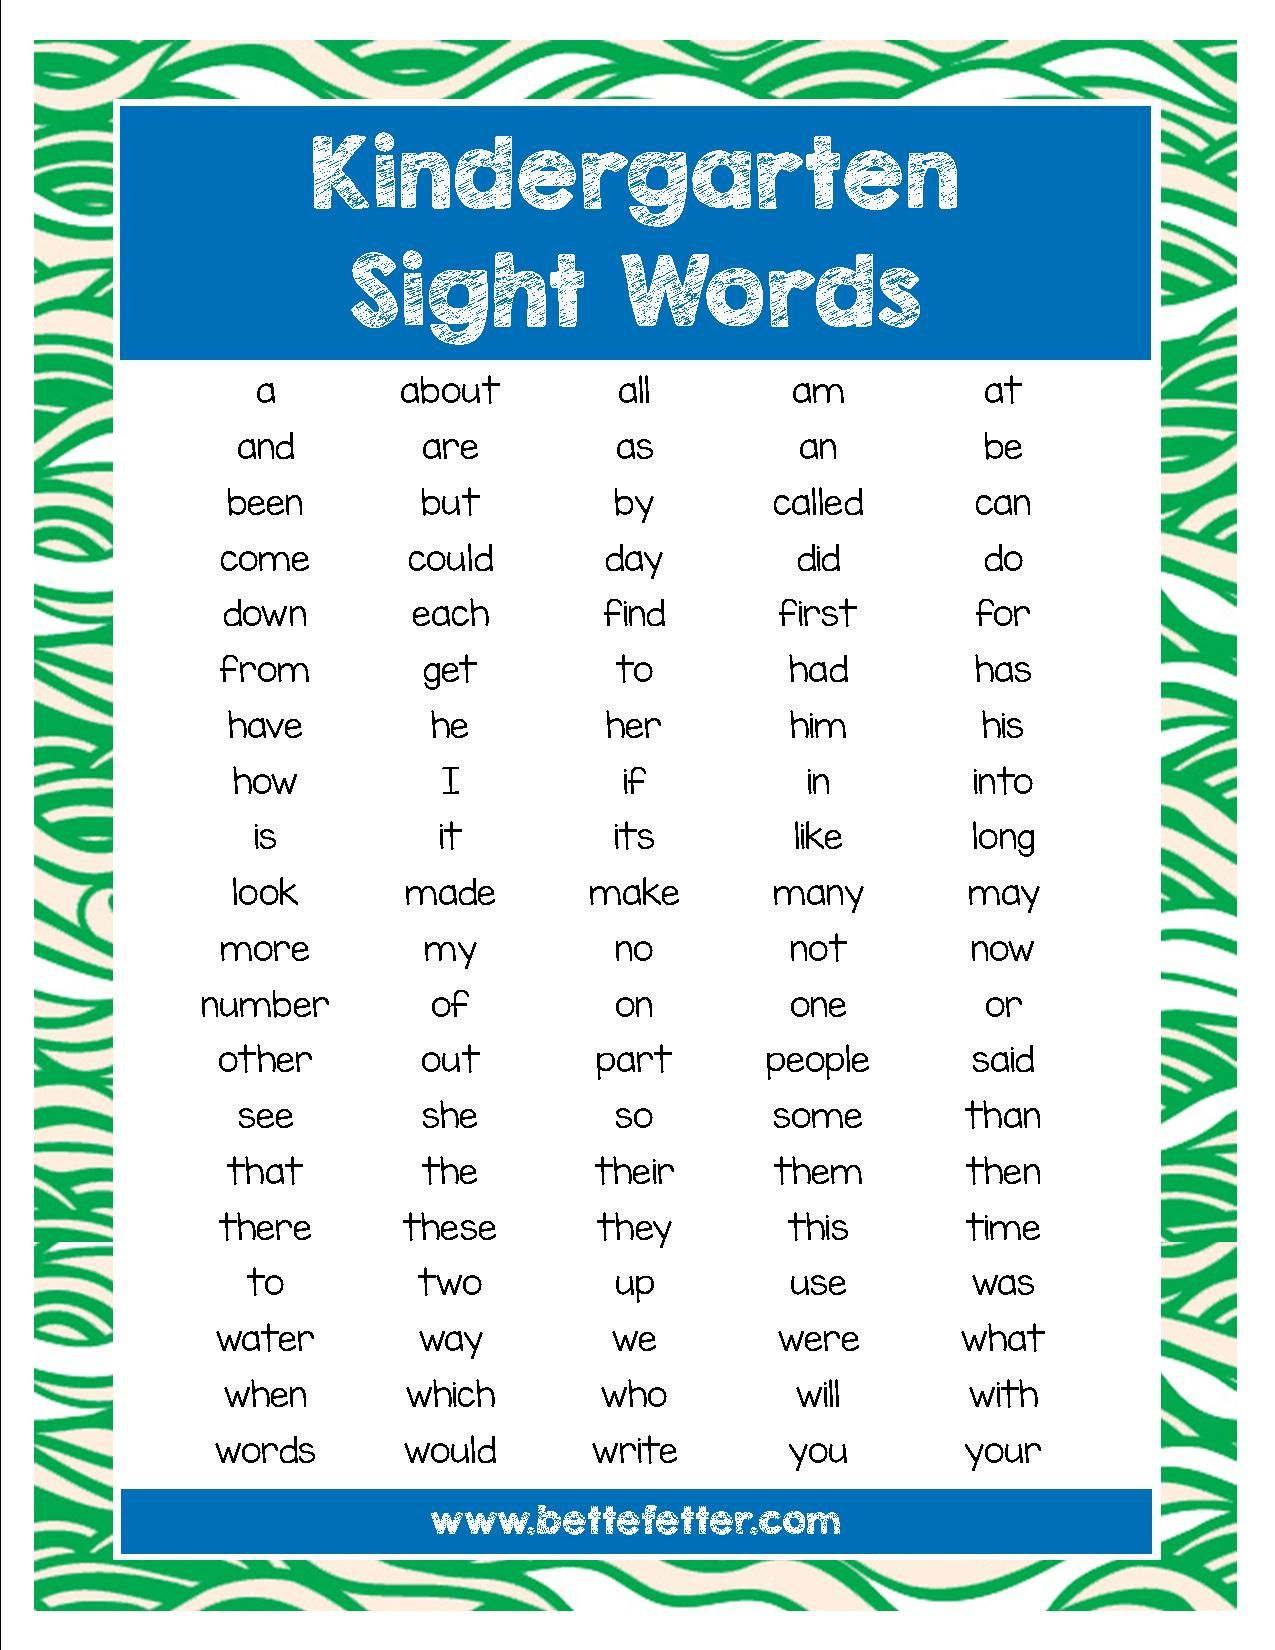 medium resolution of 100 Sight Words Your Child Should Know   Sight words kindergarten